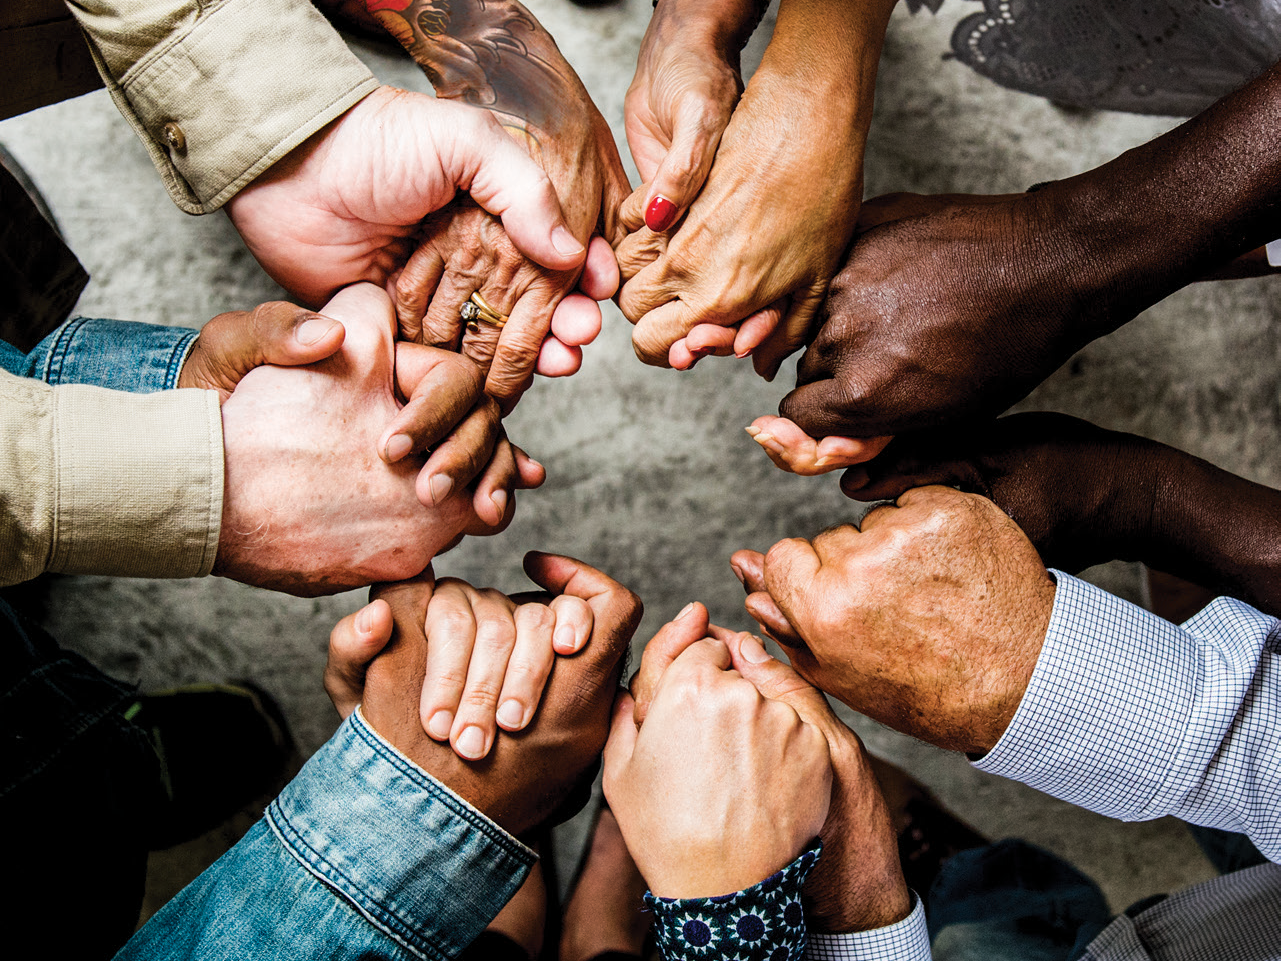 A diverse group of people stand in a circle holding hands. Image by Rawpixel, iStockphoto.com.